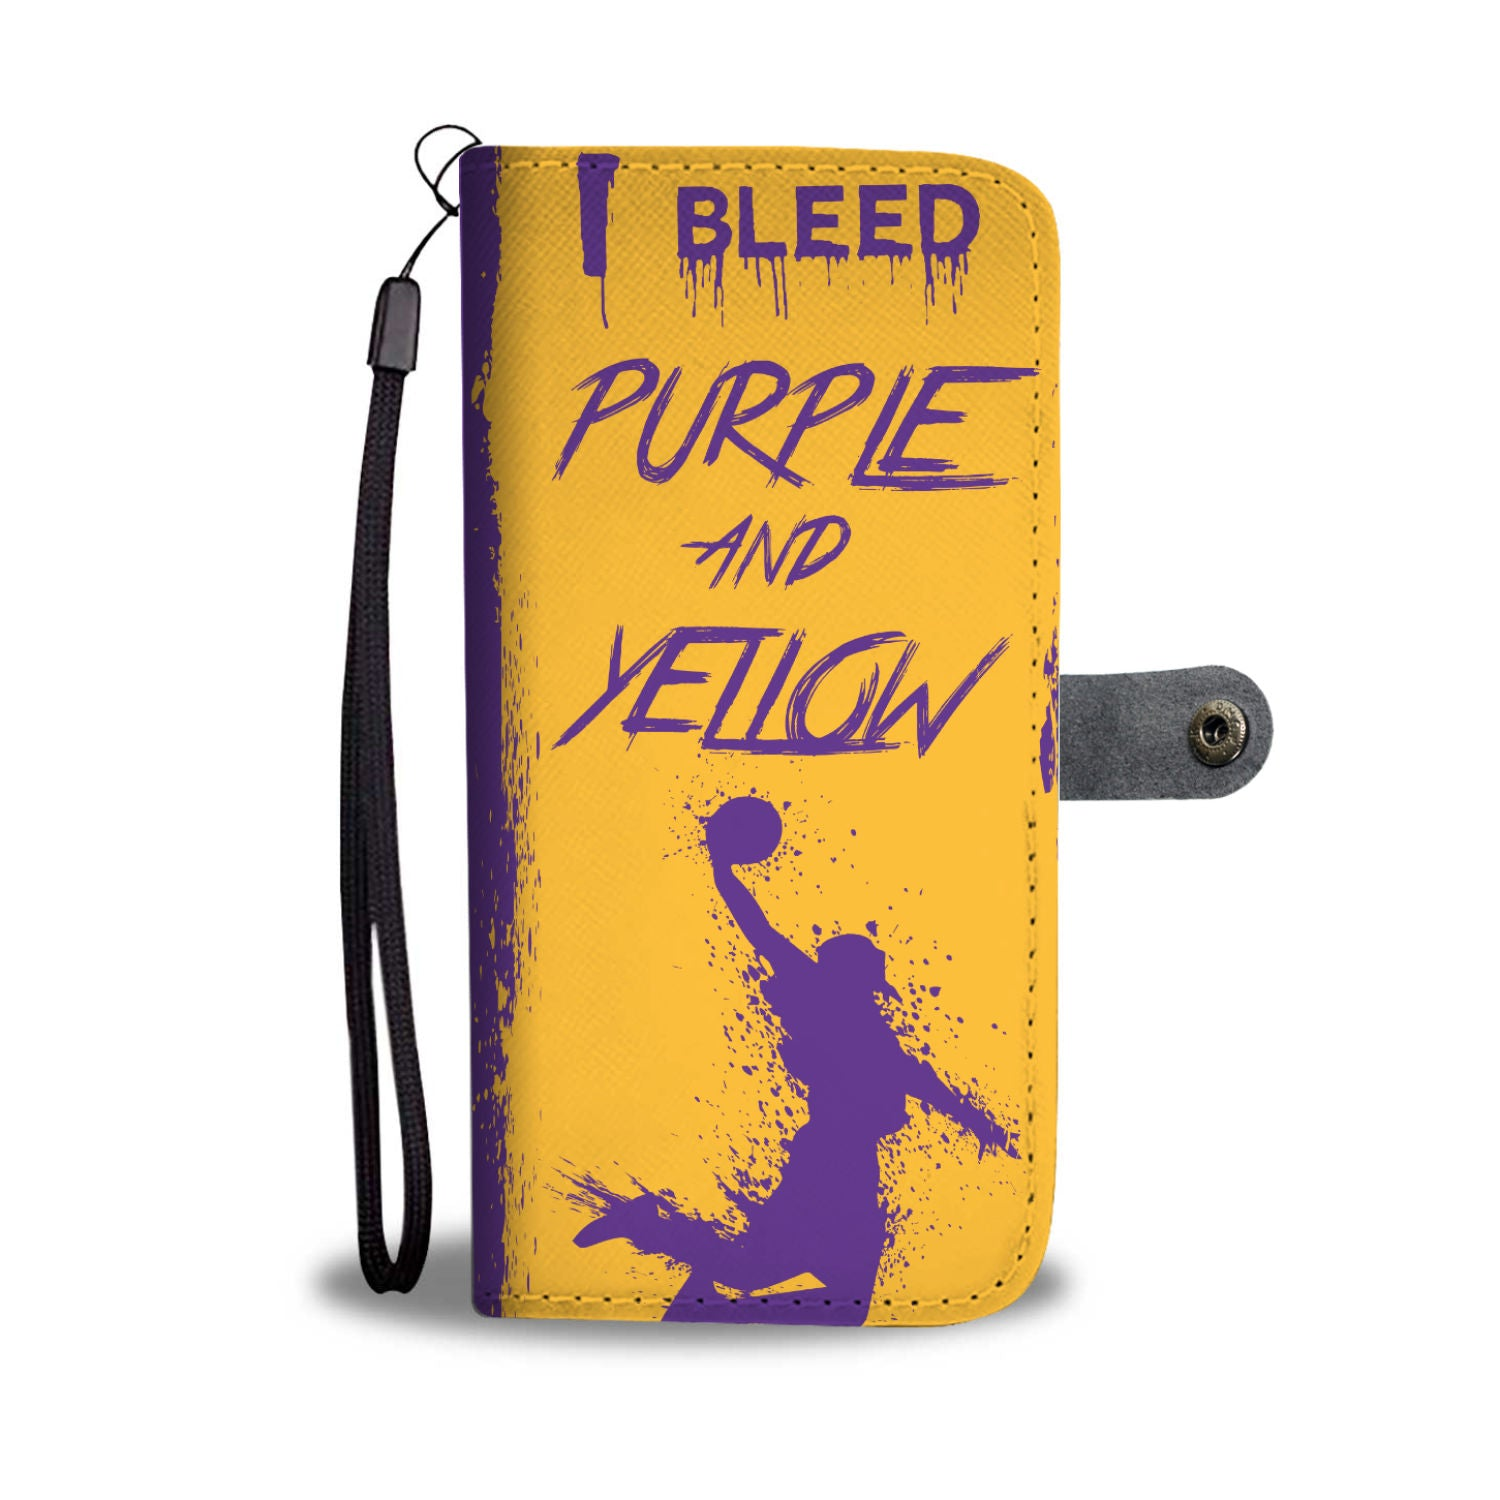 4a5c98d1c2a I Bleed Purple and Yellow Los Angeles Lakers Phone Wallet (American  Basketball)